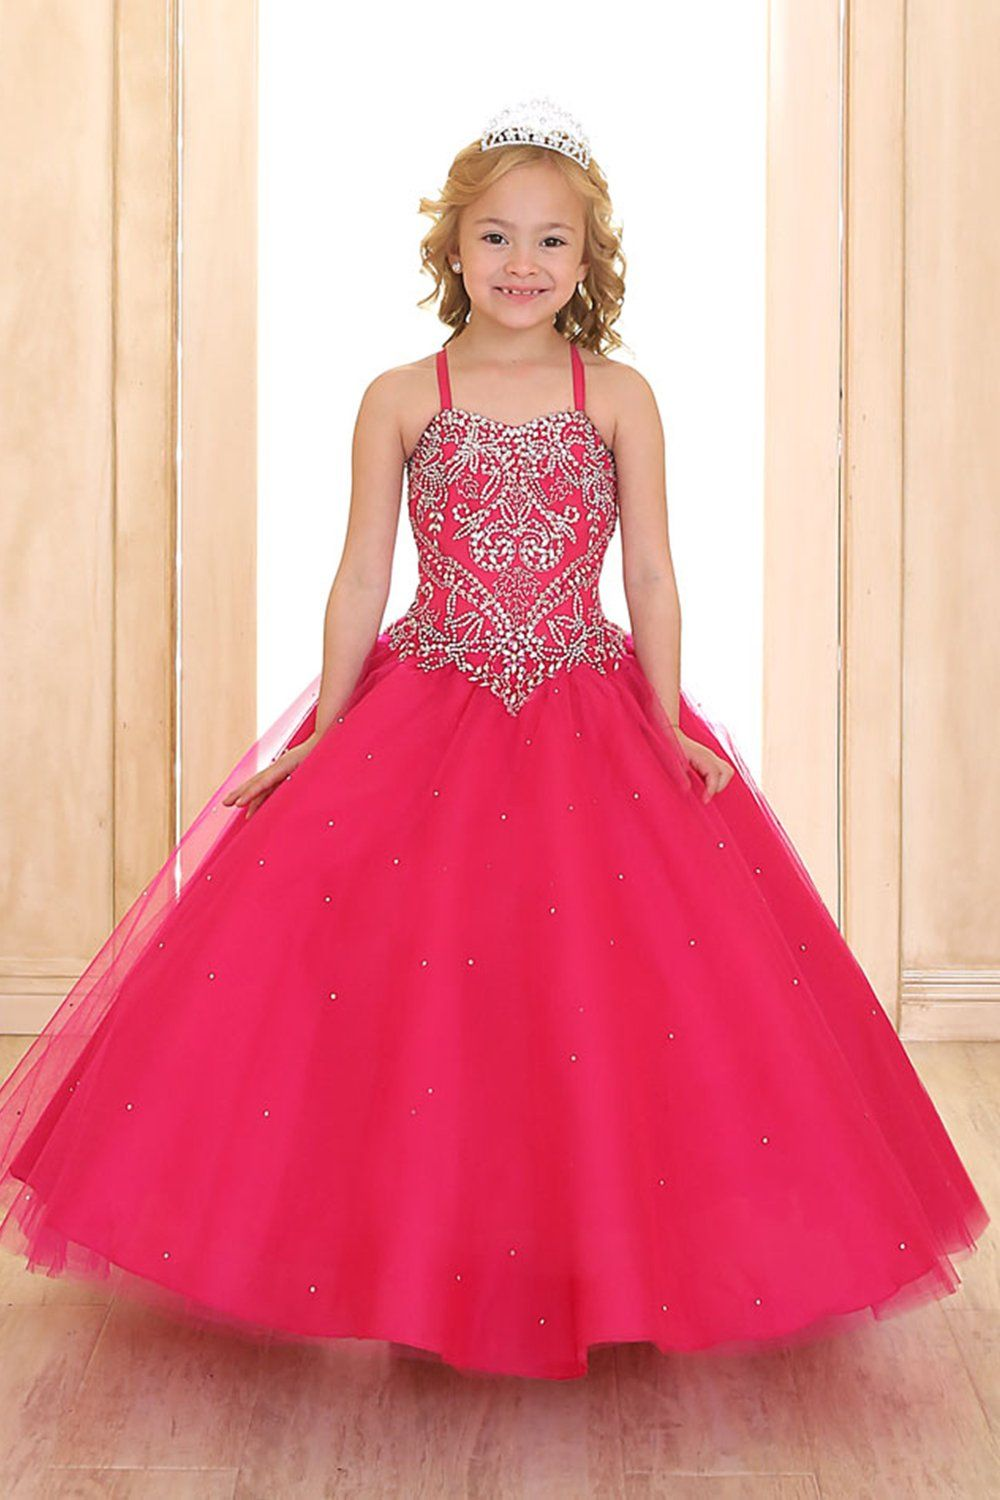 Fuchsia Princess Ball Gown Dress with Short Lovely Borelo Jacket ...